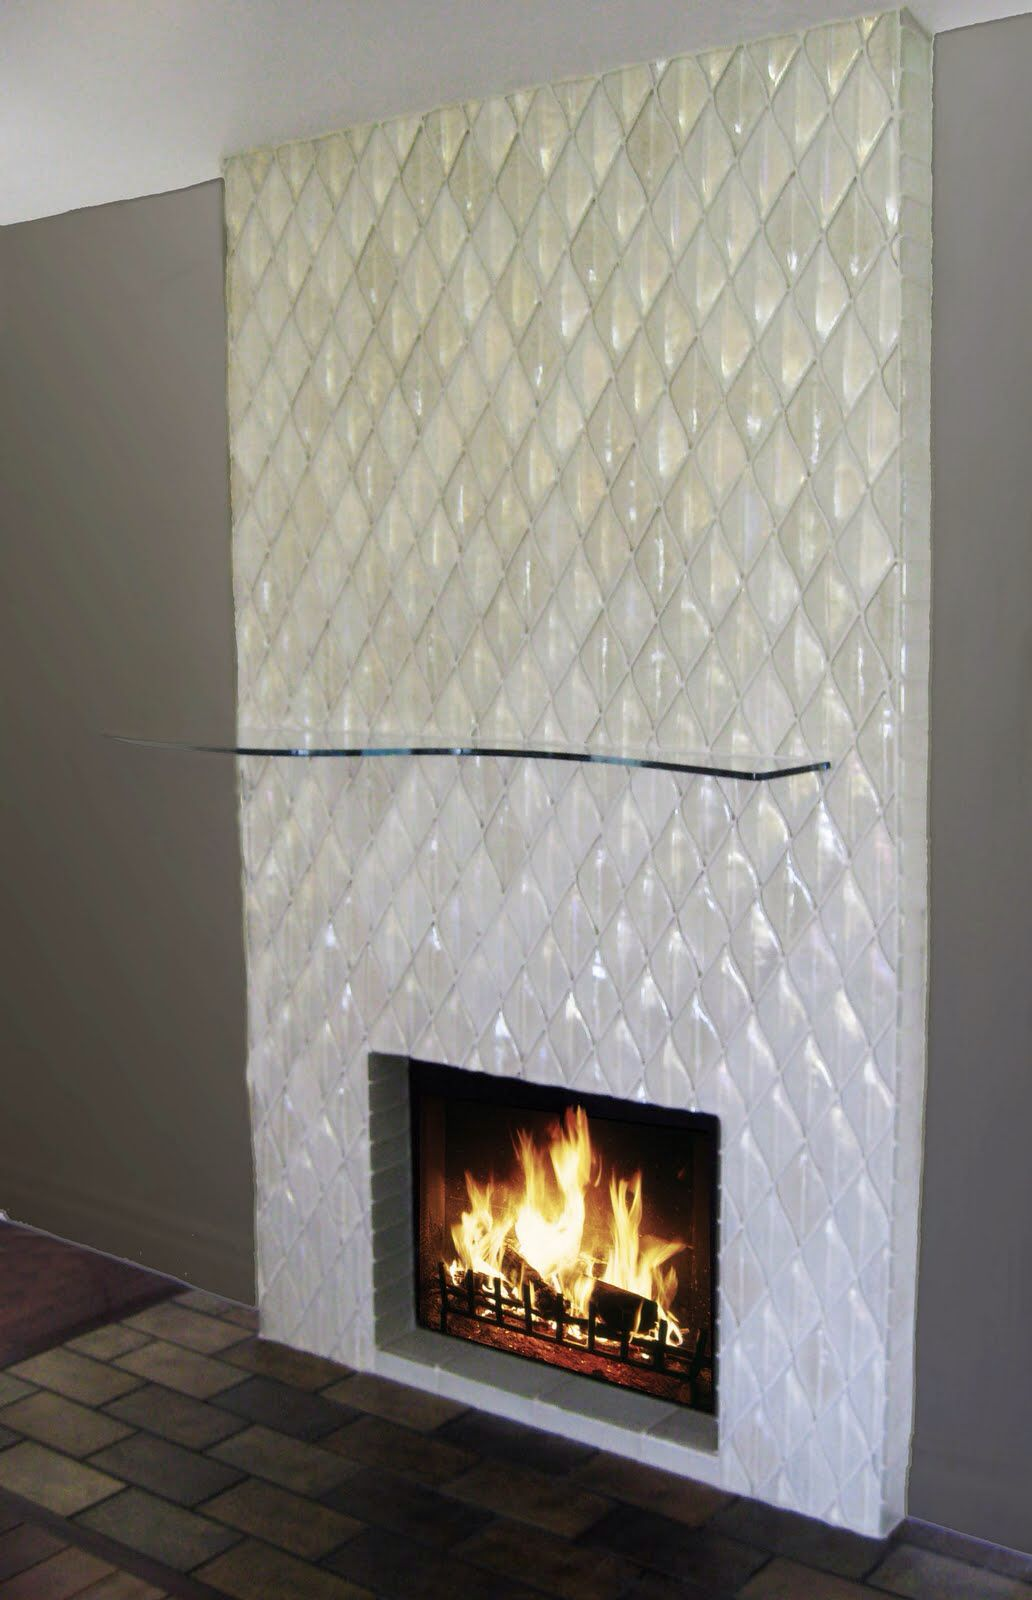 Image from http://www.luxtica.com/images/contemporary-fireplace ...